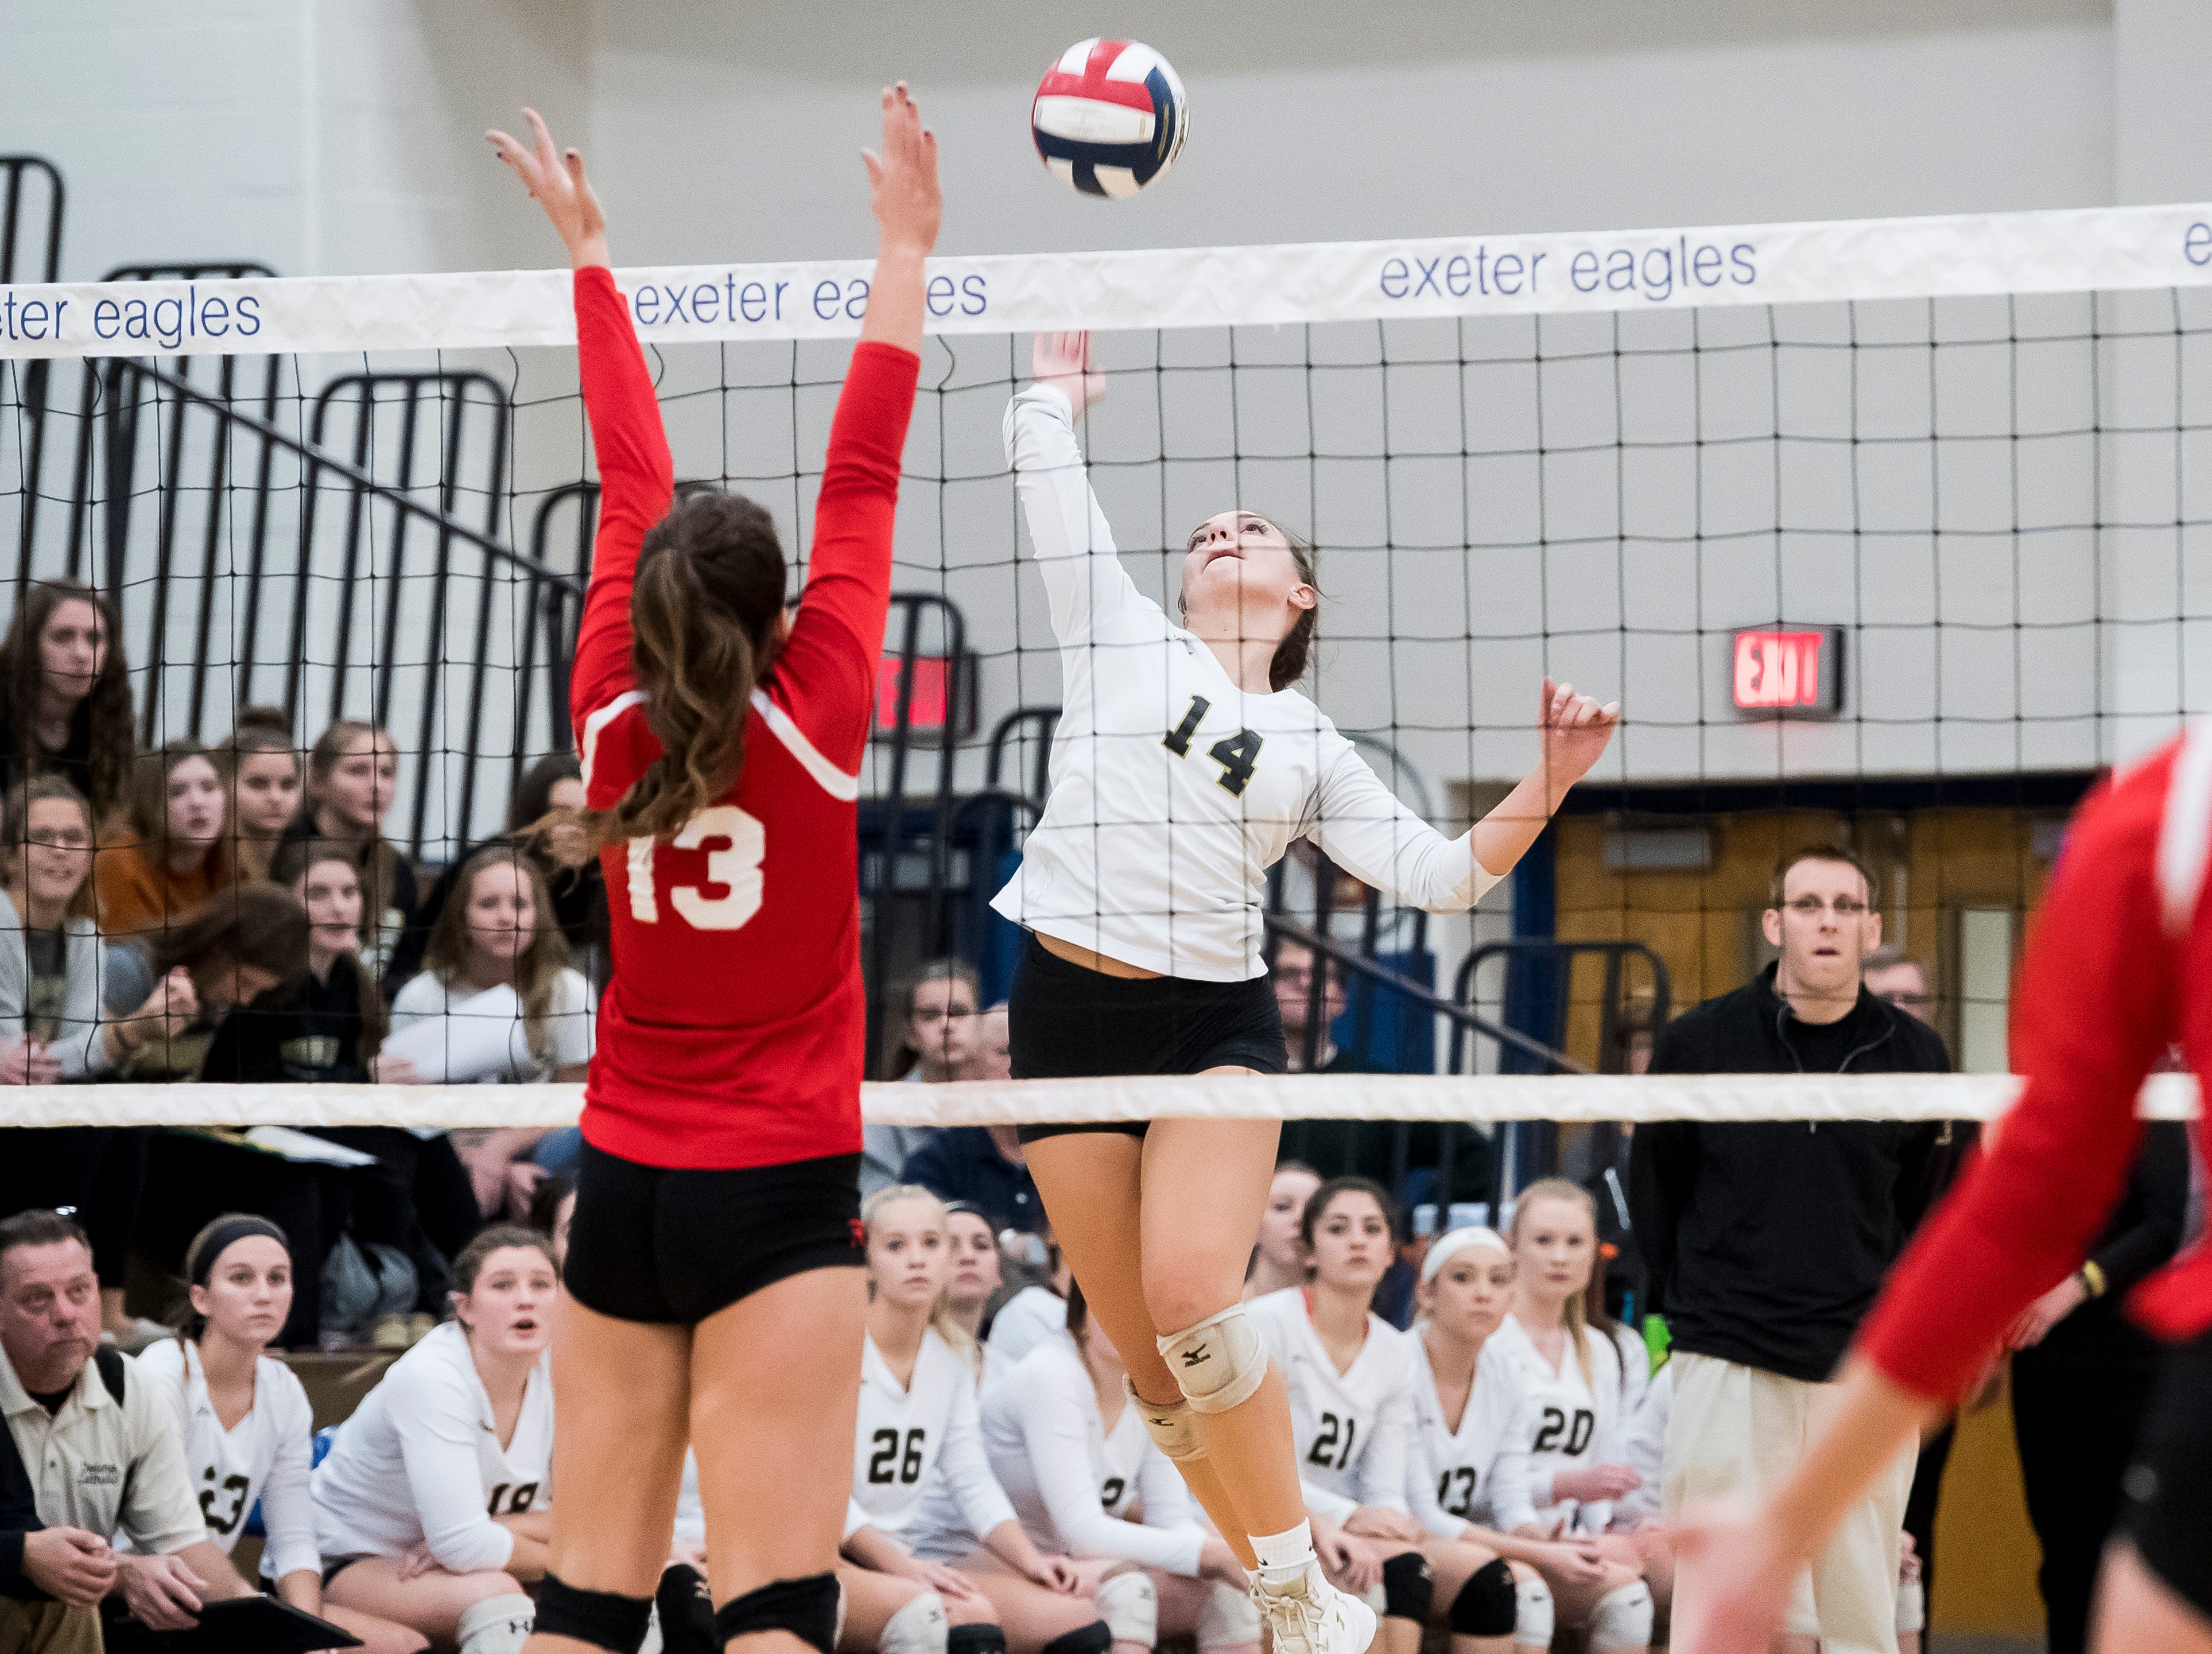 Delone Catholic's Molly Raville jumps to hit the ball over the net during a PIAA 2A semifinal game against Holy Redeemer at Exeter Township High School in Reading on Tuesday, November 13, 2018. The Squires fell in five sets; 23-25, 25-13, 25-13, 18-25, 15-10.